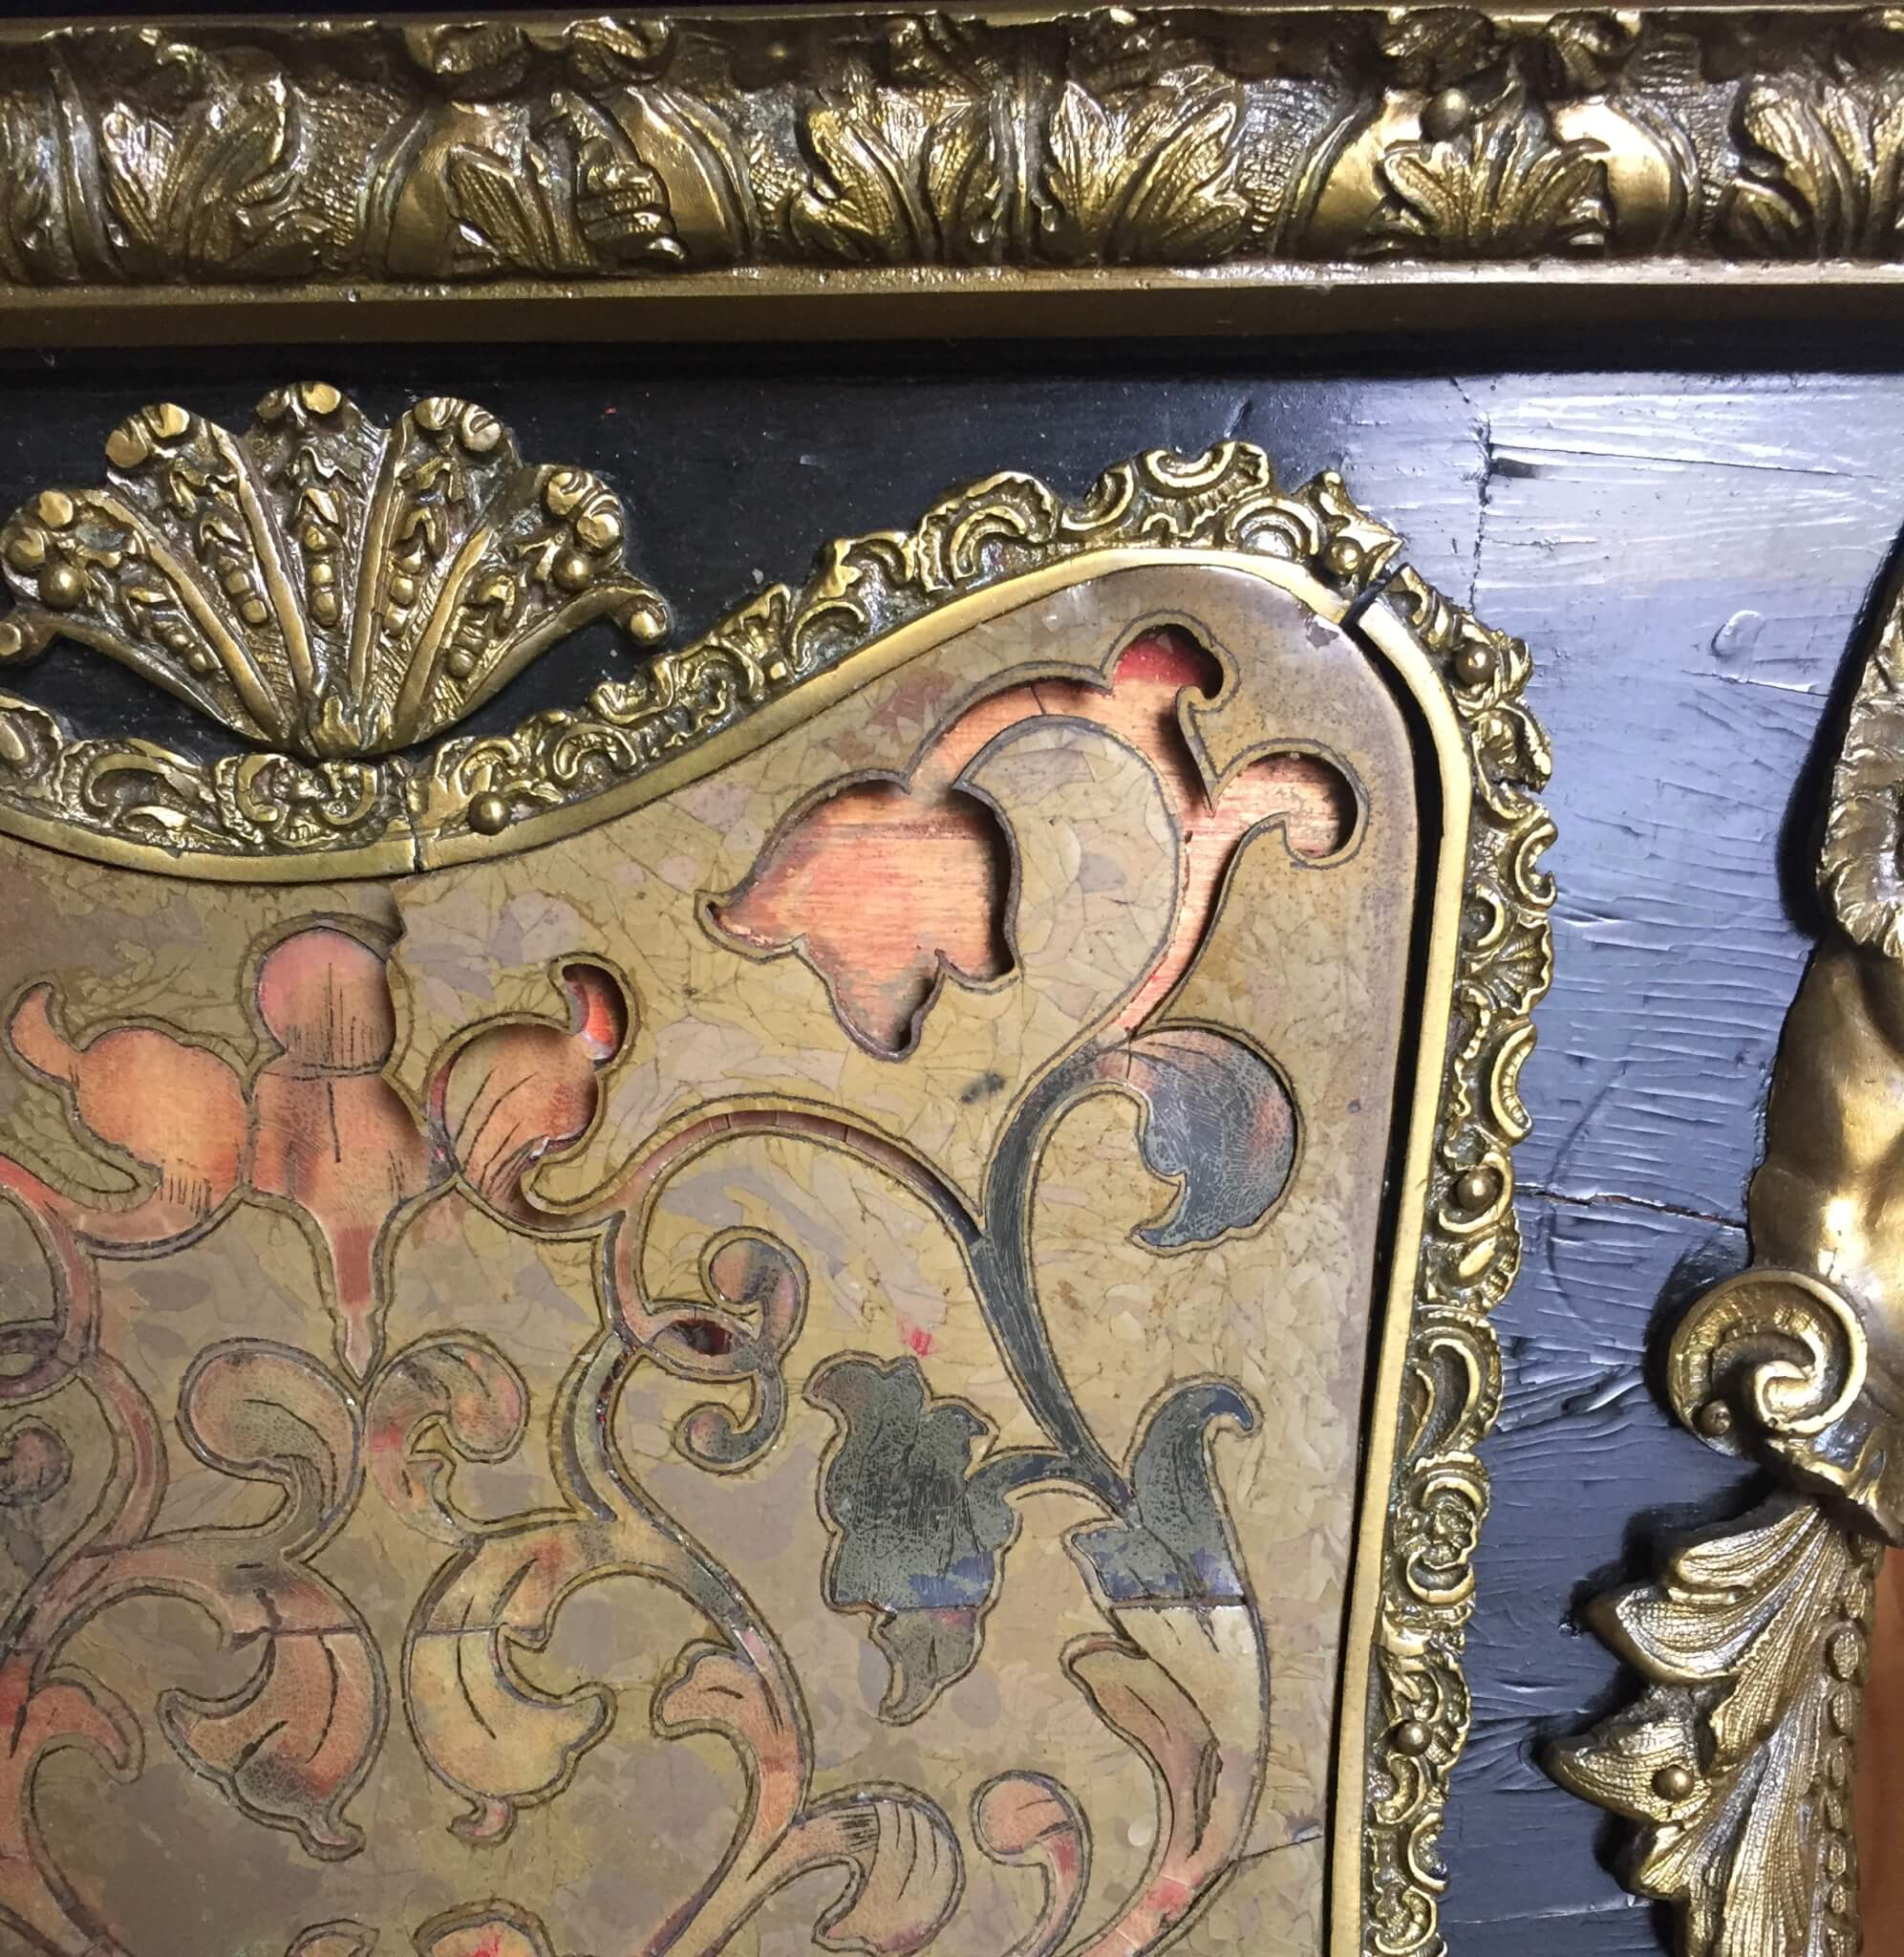 Boulle furniture treatment, boulle work resotration, furniture repair, emergency furniture services